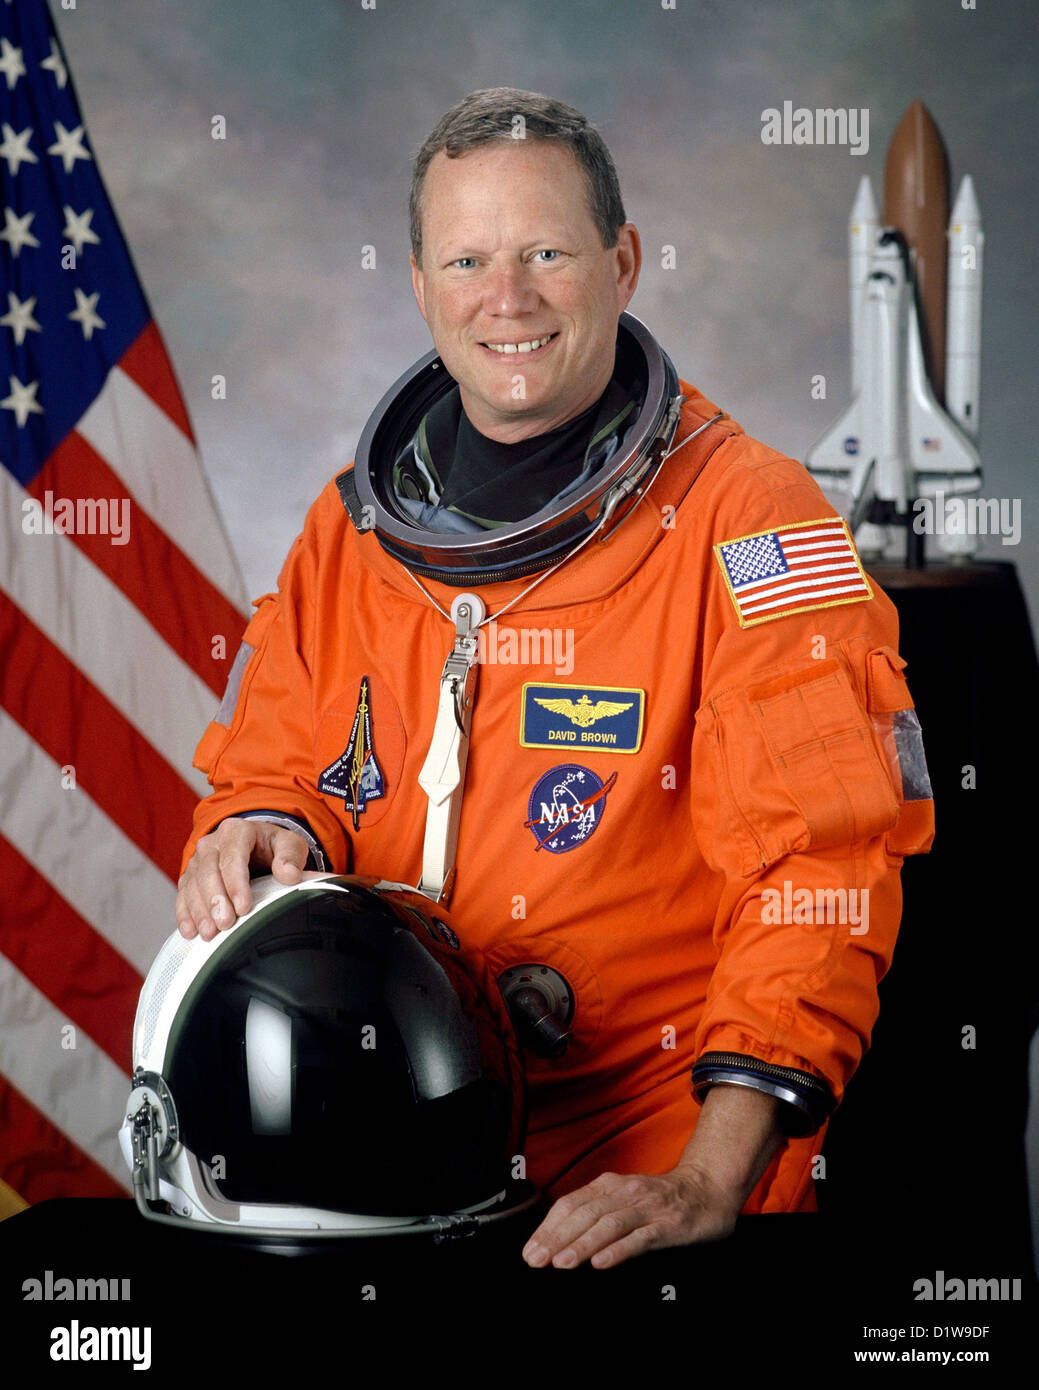 David M. Brown, American astronaut who died during the failed re-entry of Space Shuttle Columbia. - Stock Image